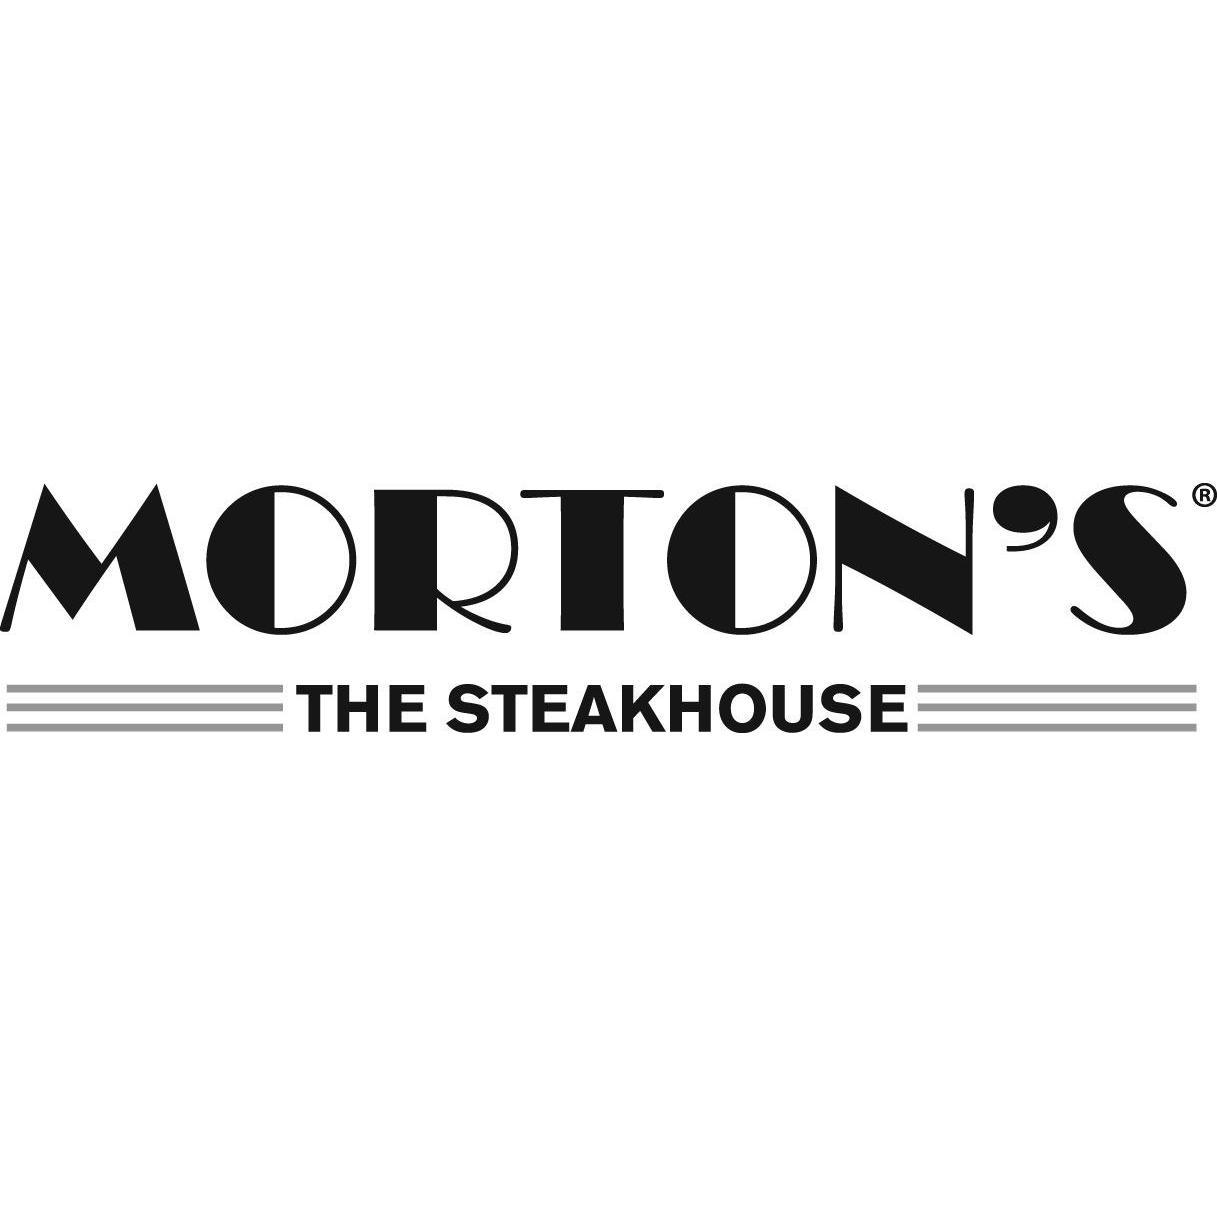 Morton's The Steakhouse - Fort Lauderdale, FL - Restaurants